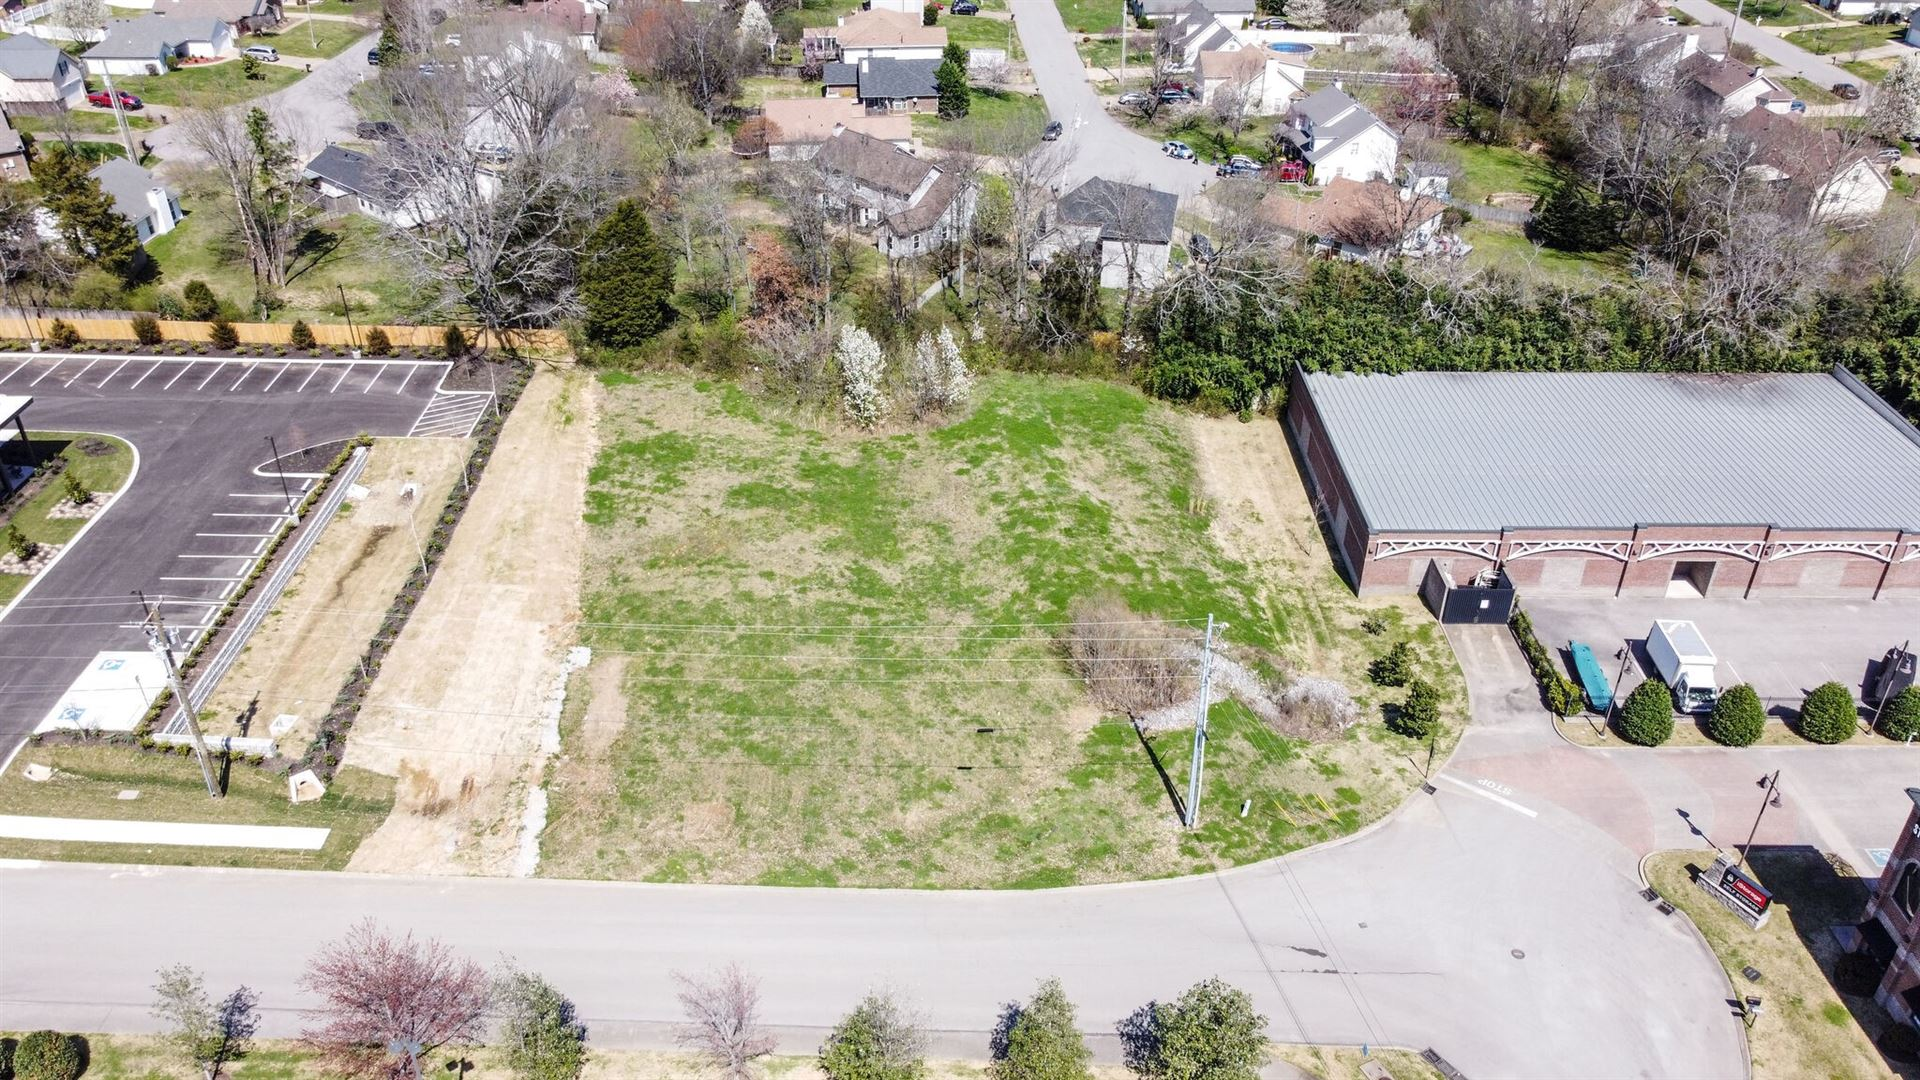 Photo of 2214 Spedale Court, Spring Hill, TN 37174 (MLS # 2235341)